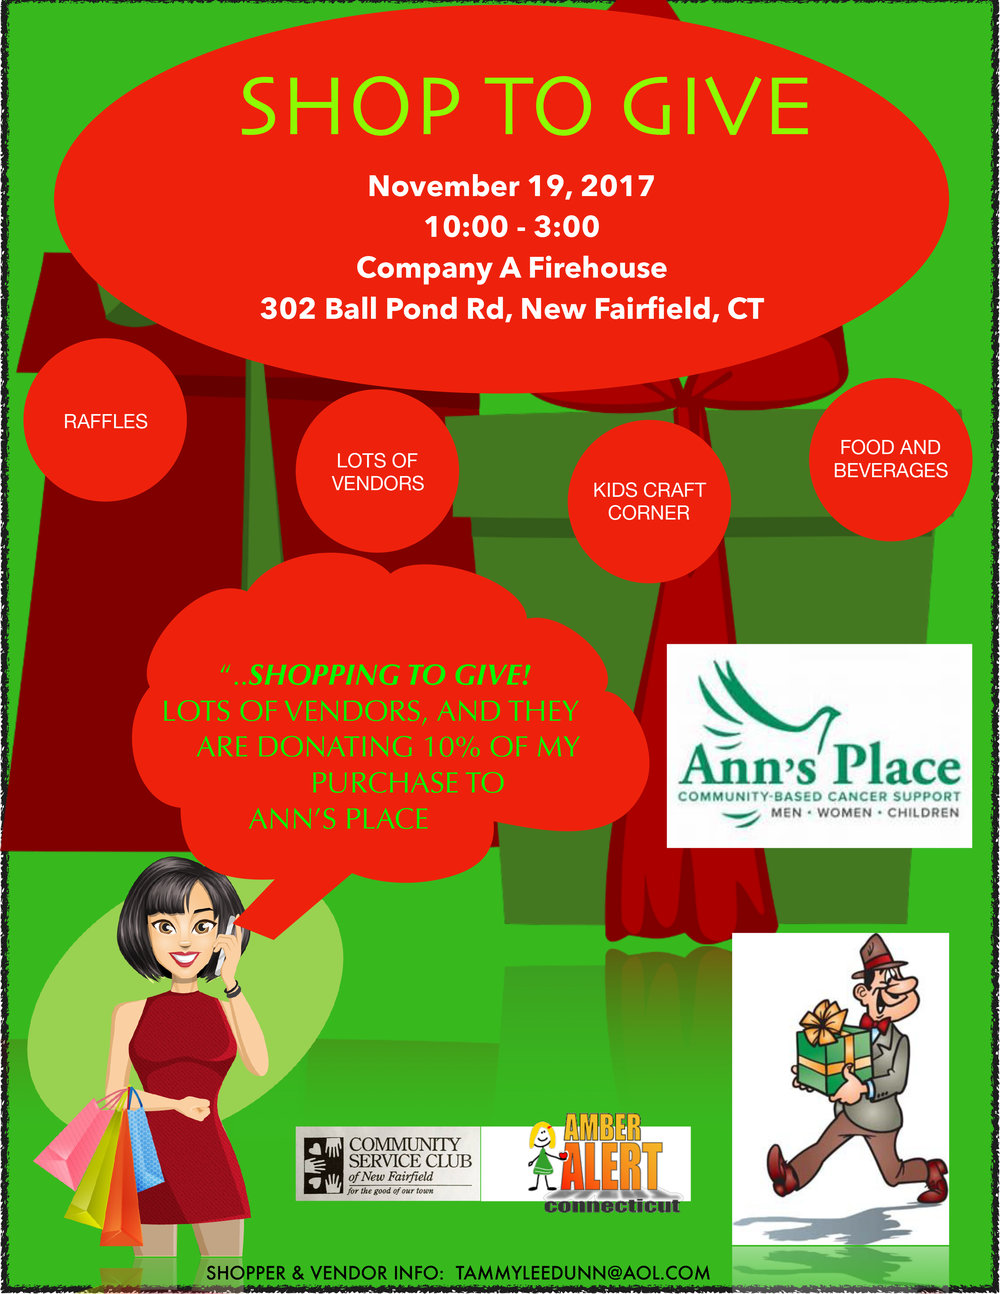 SHOP TO GIVE FOR ANNS PLACE-1.jpg